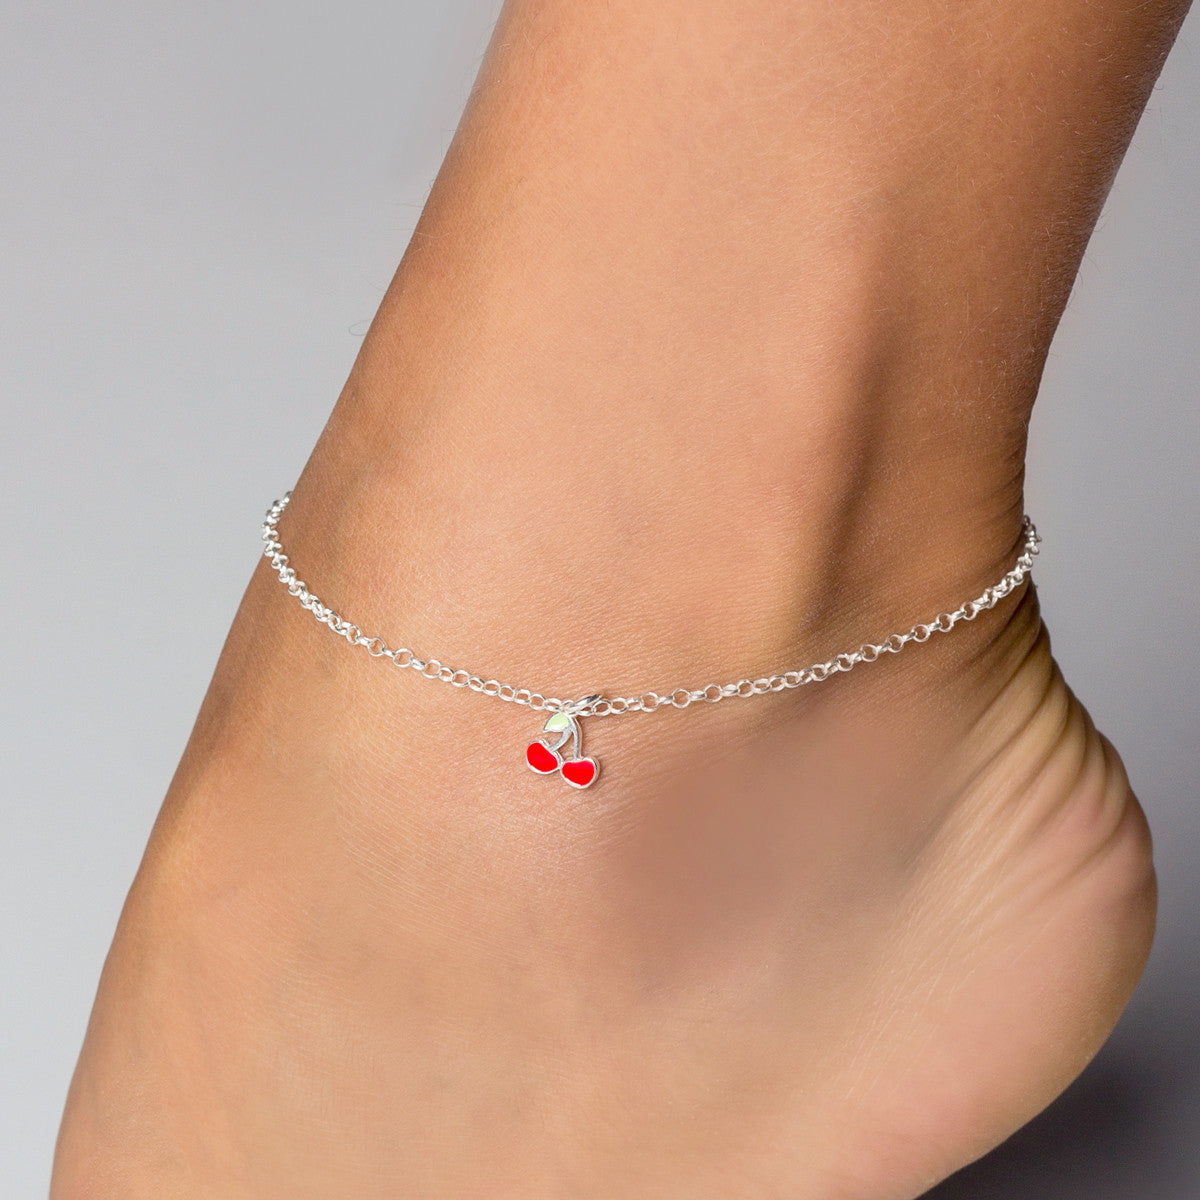 inch g plated charm wholesale products ankle silver sterling cut bracelet rhodium anklet bead close bracelets heart chain photo up cool s stainless rhoidum finish jewelry and ion diamond collections steel gold